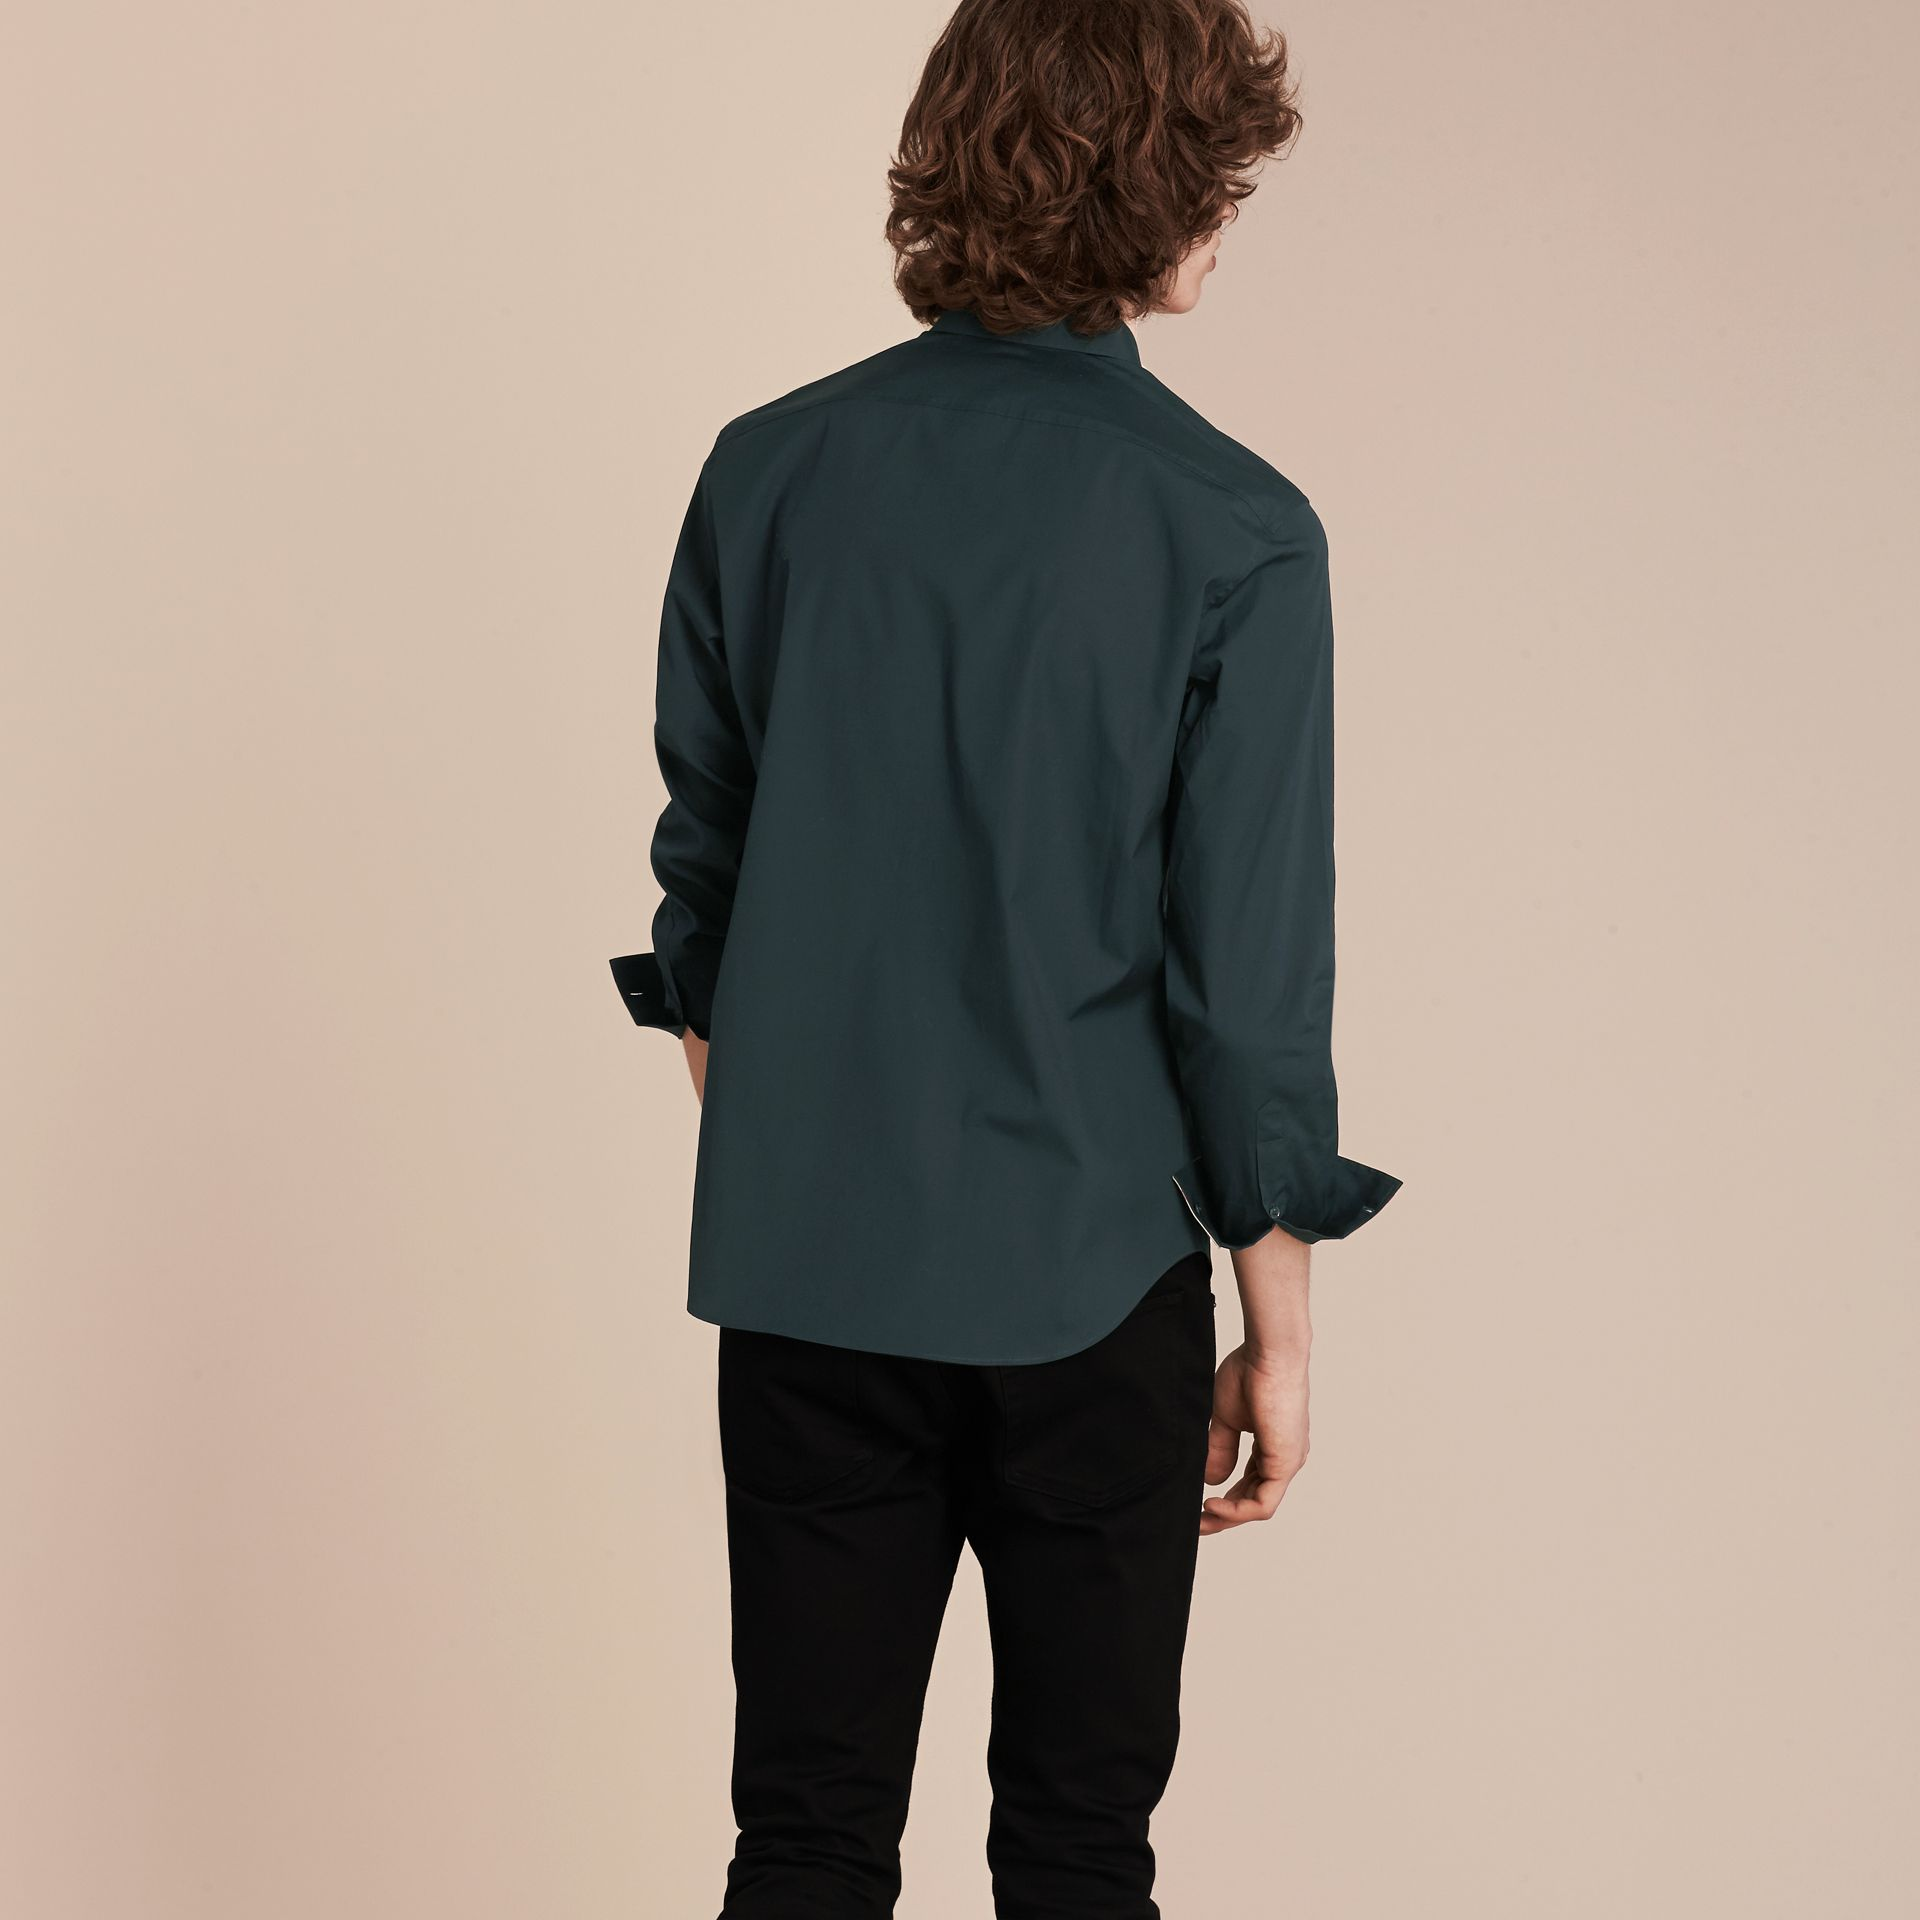 Dark teal green Check Detail Stretch Cotton Poplin Shirt Dark Teal Green - gallery image 3